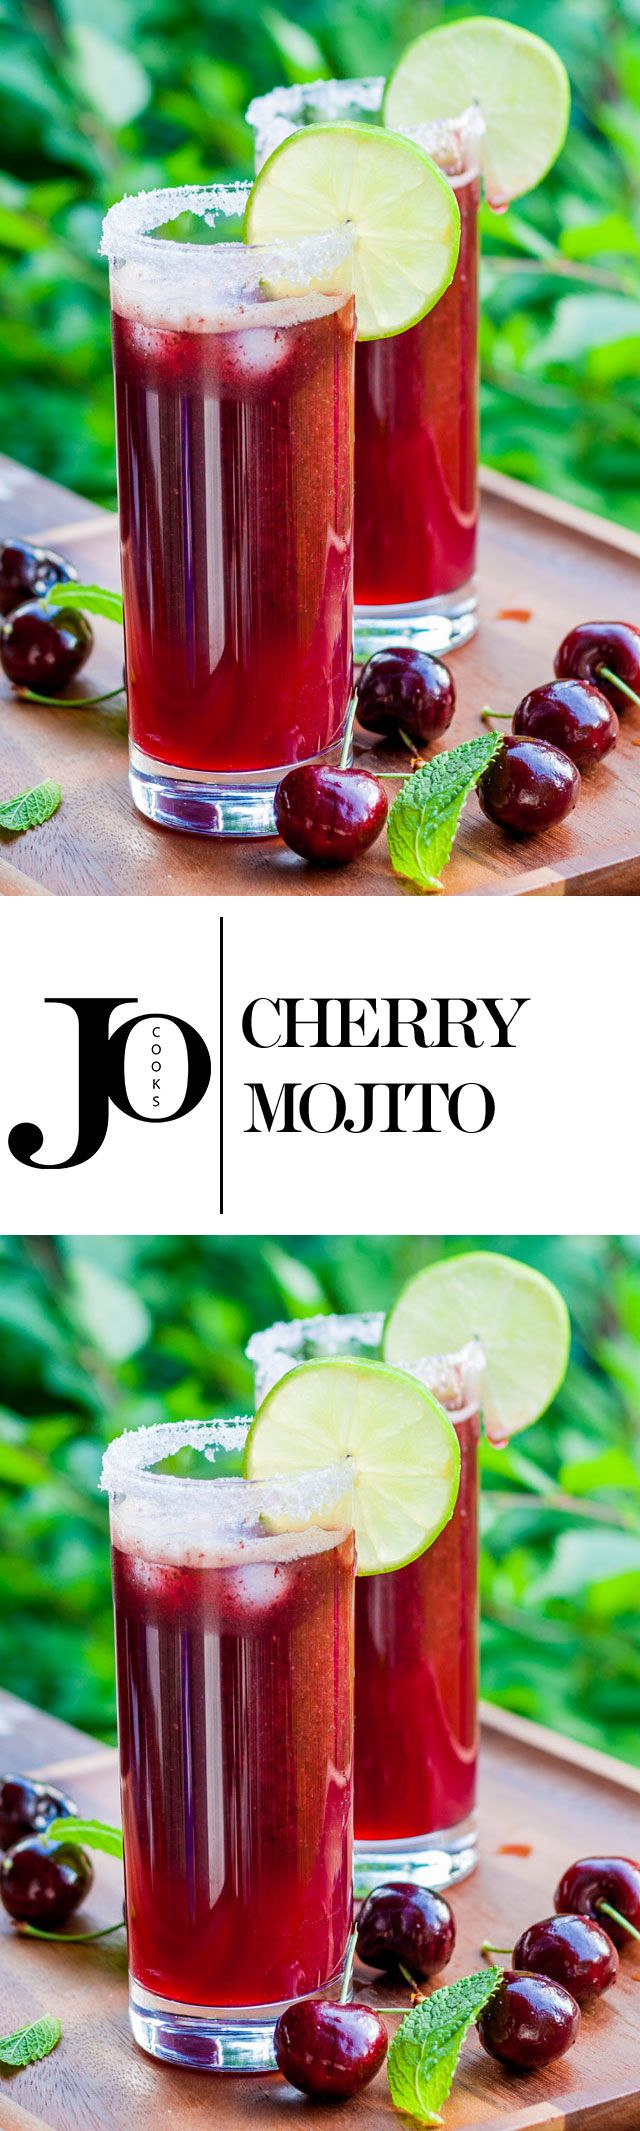 The Ultimate Mojito The Sequel The Cherry Mojito Jo Cooks Drinks Alcohol Recipes Food Yummy Drinks